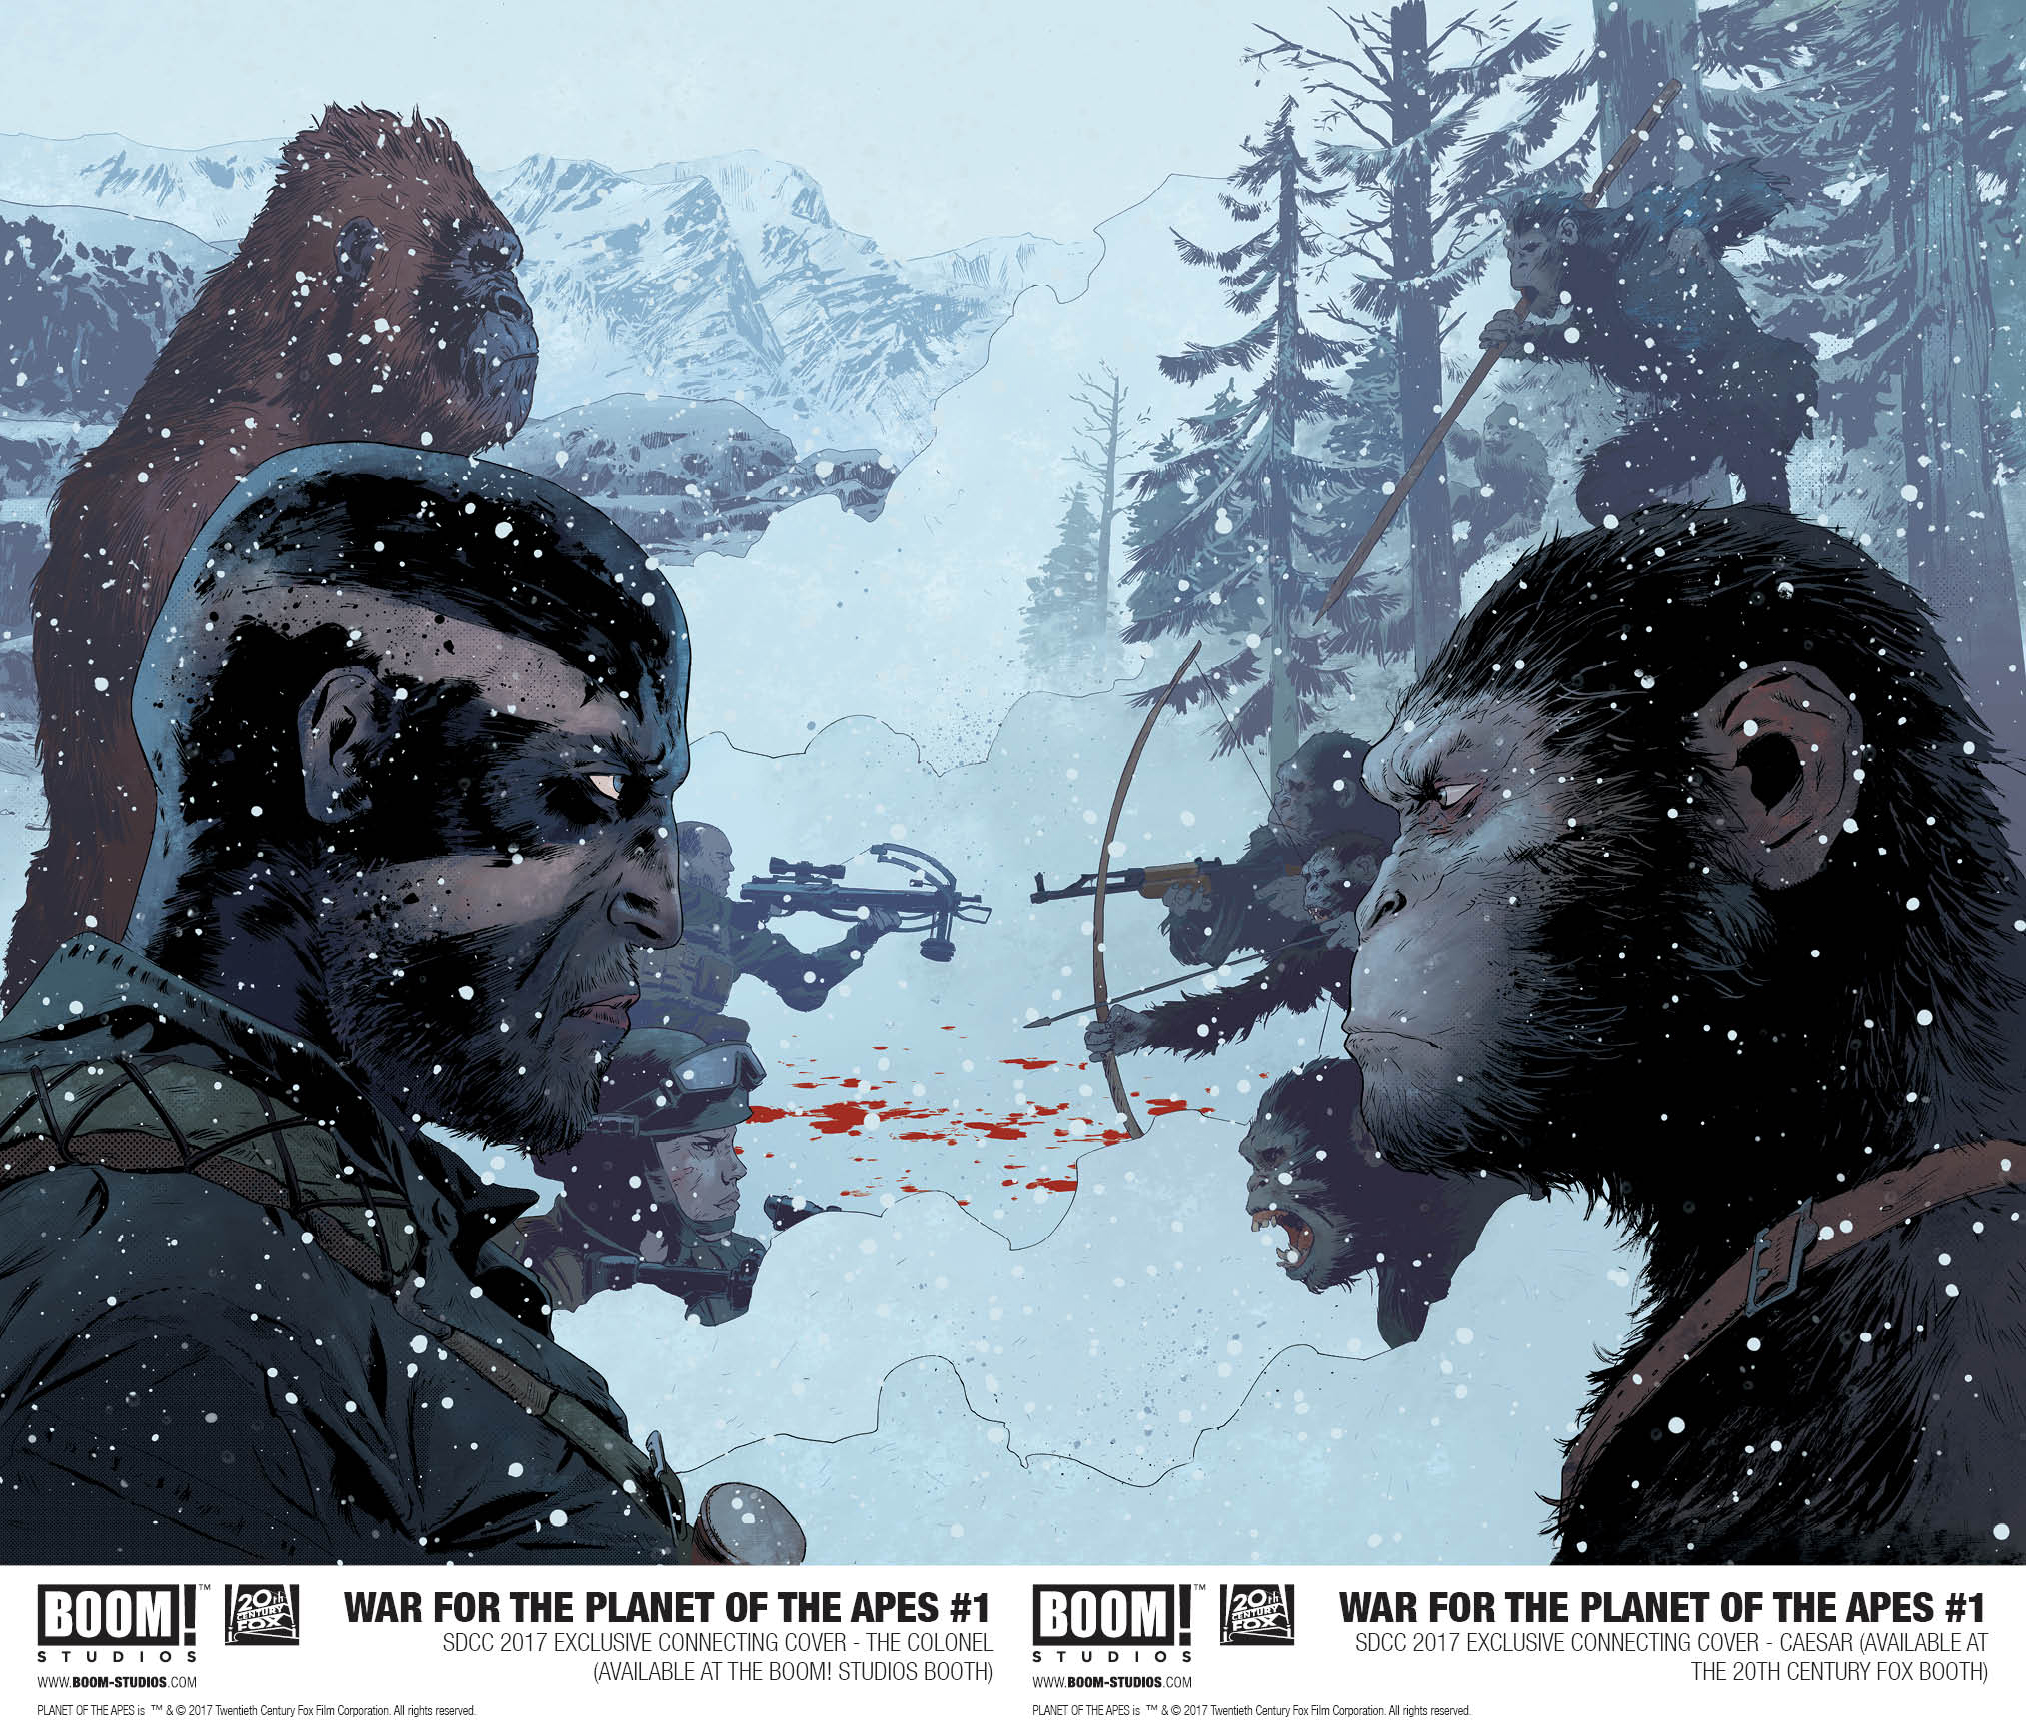 BOOM_SDCC17_WarForThePlanetOfTheApes_001_Exclusive_Connected